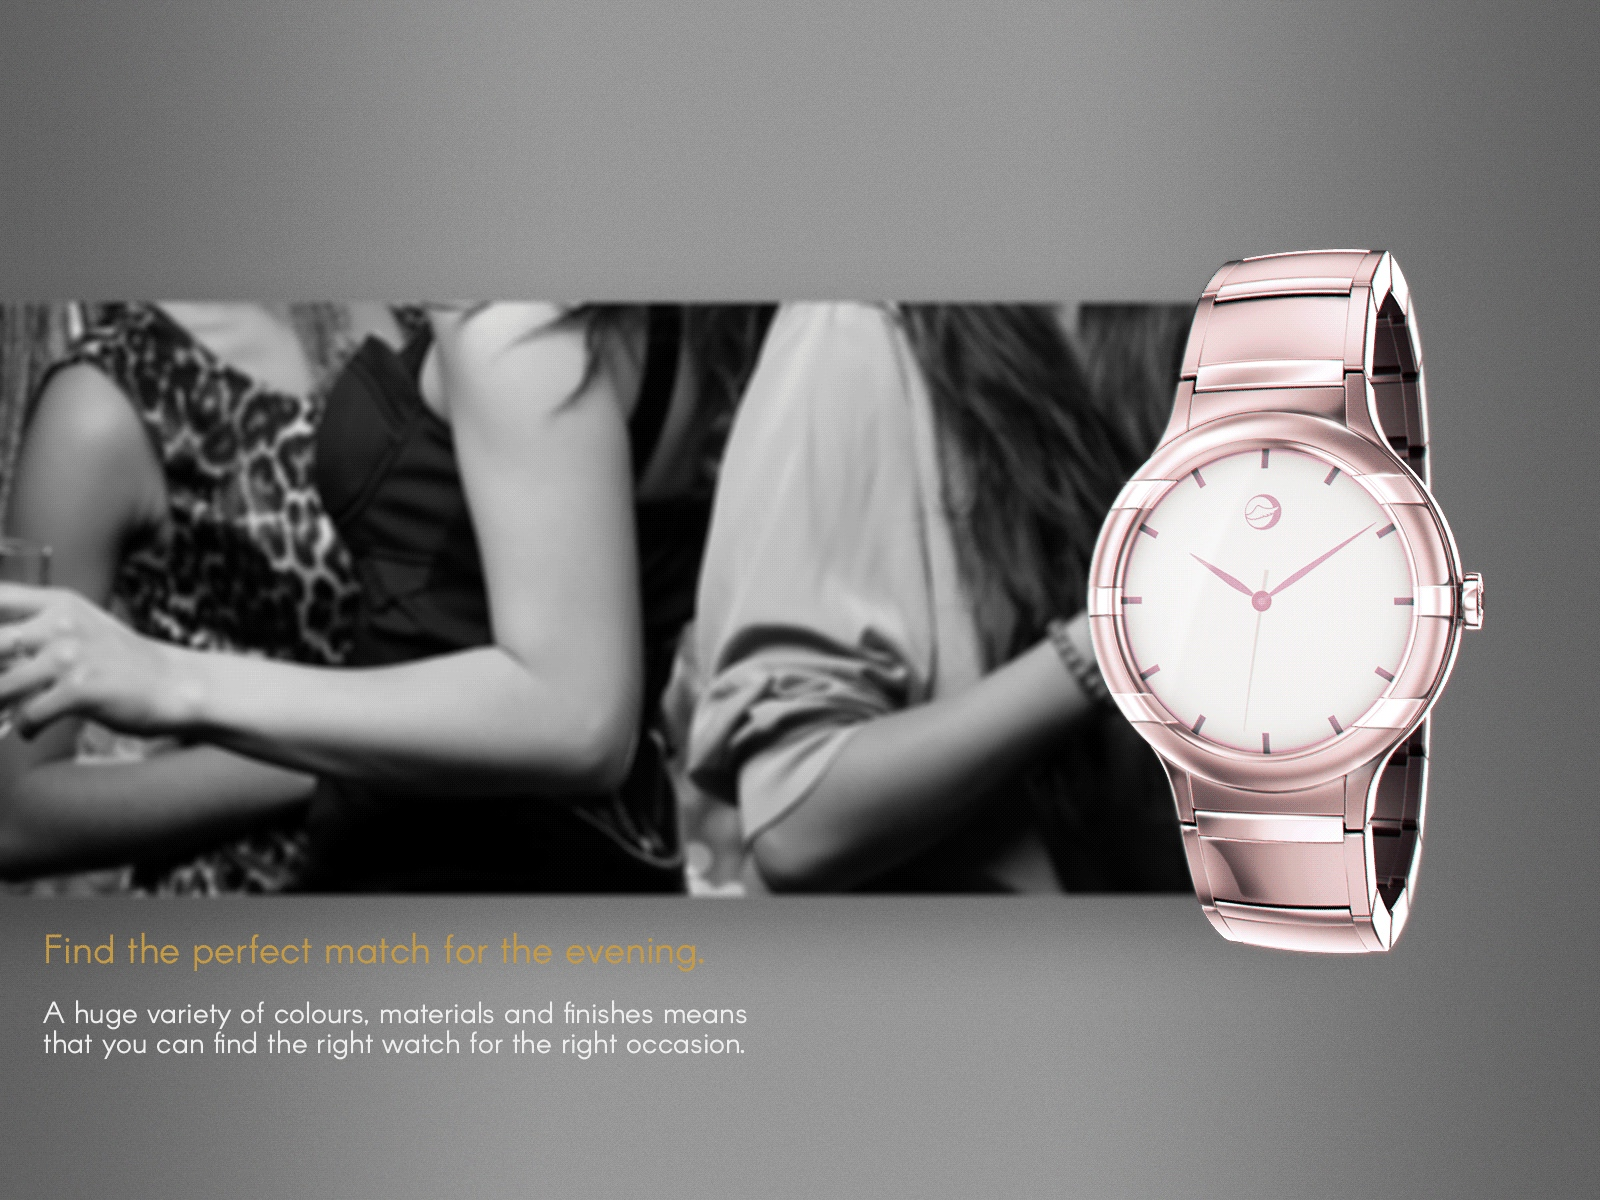 An example of an elegant woman's rose gold style watch